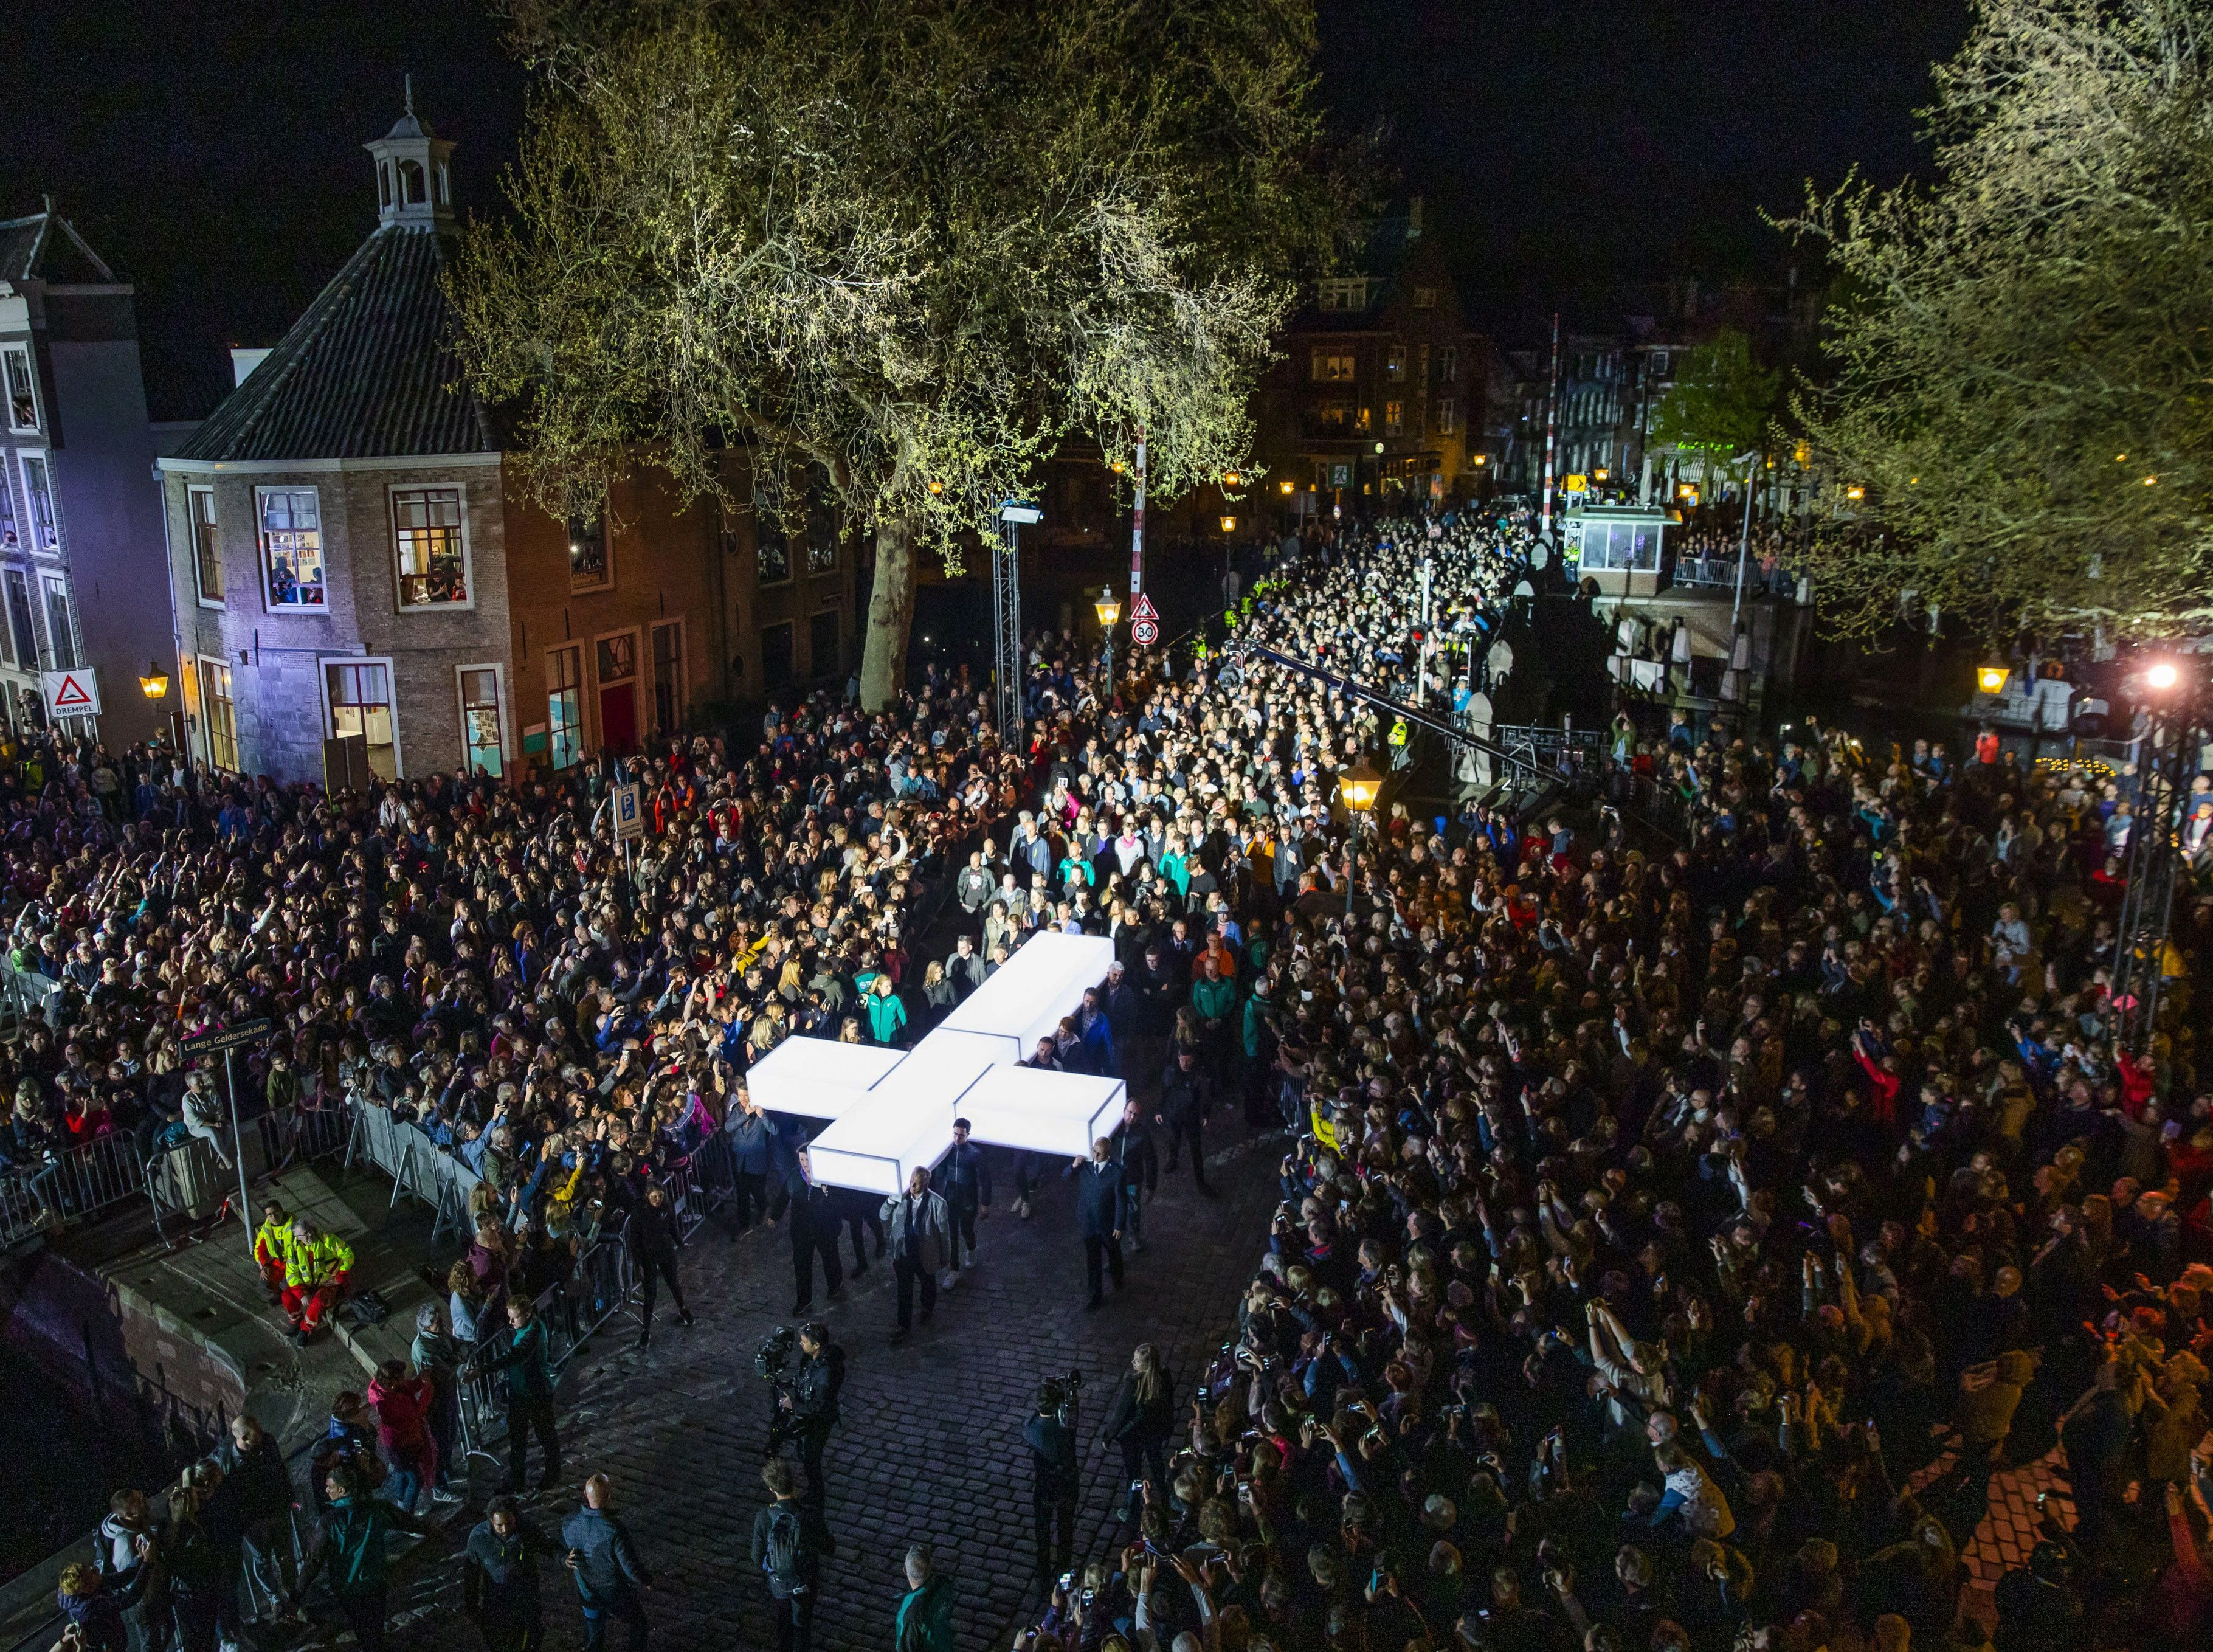 """People carry a white cross during a broadcast procession of """"The Passion"""" by Dutch TV Evangelical Broadcasting through the streets of Dordrecht, on April 18, 2019."""